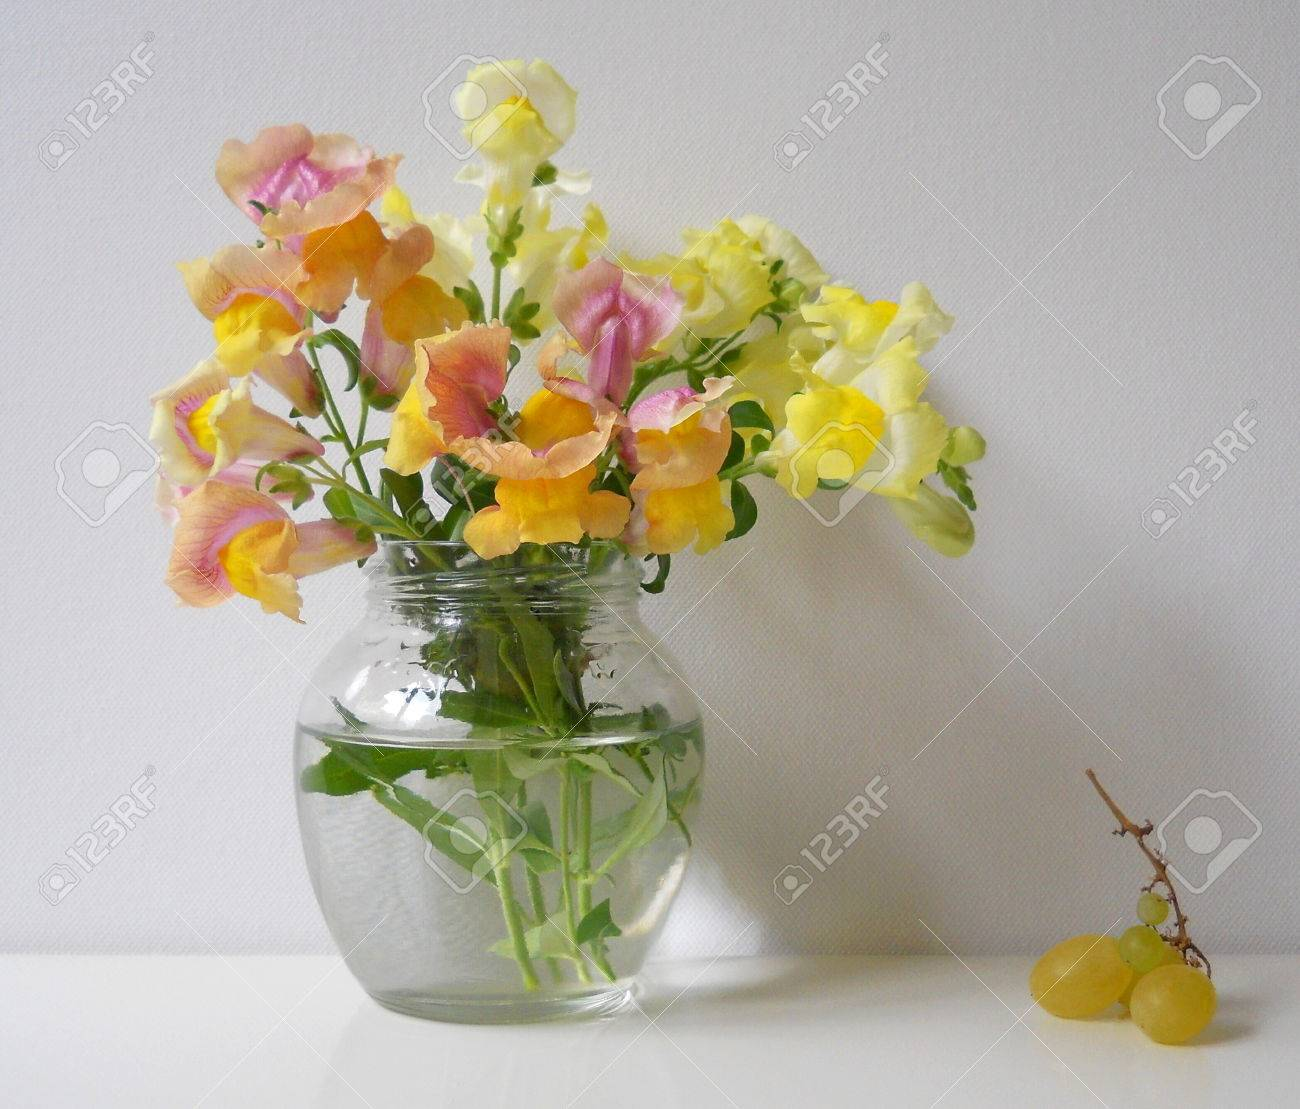 Bouquet Of Snapdragon Flowers In A Vase Spring Floral Decoration